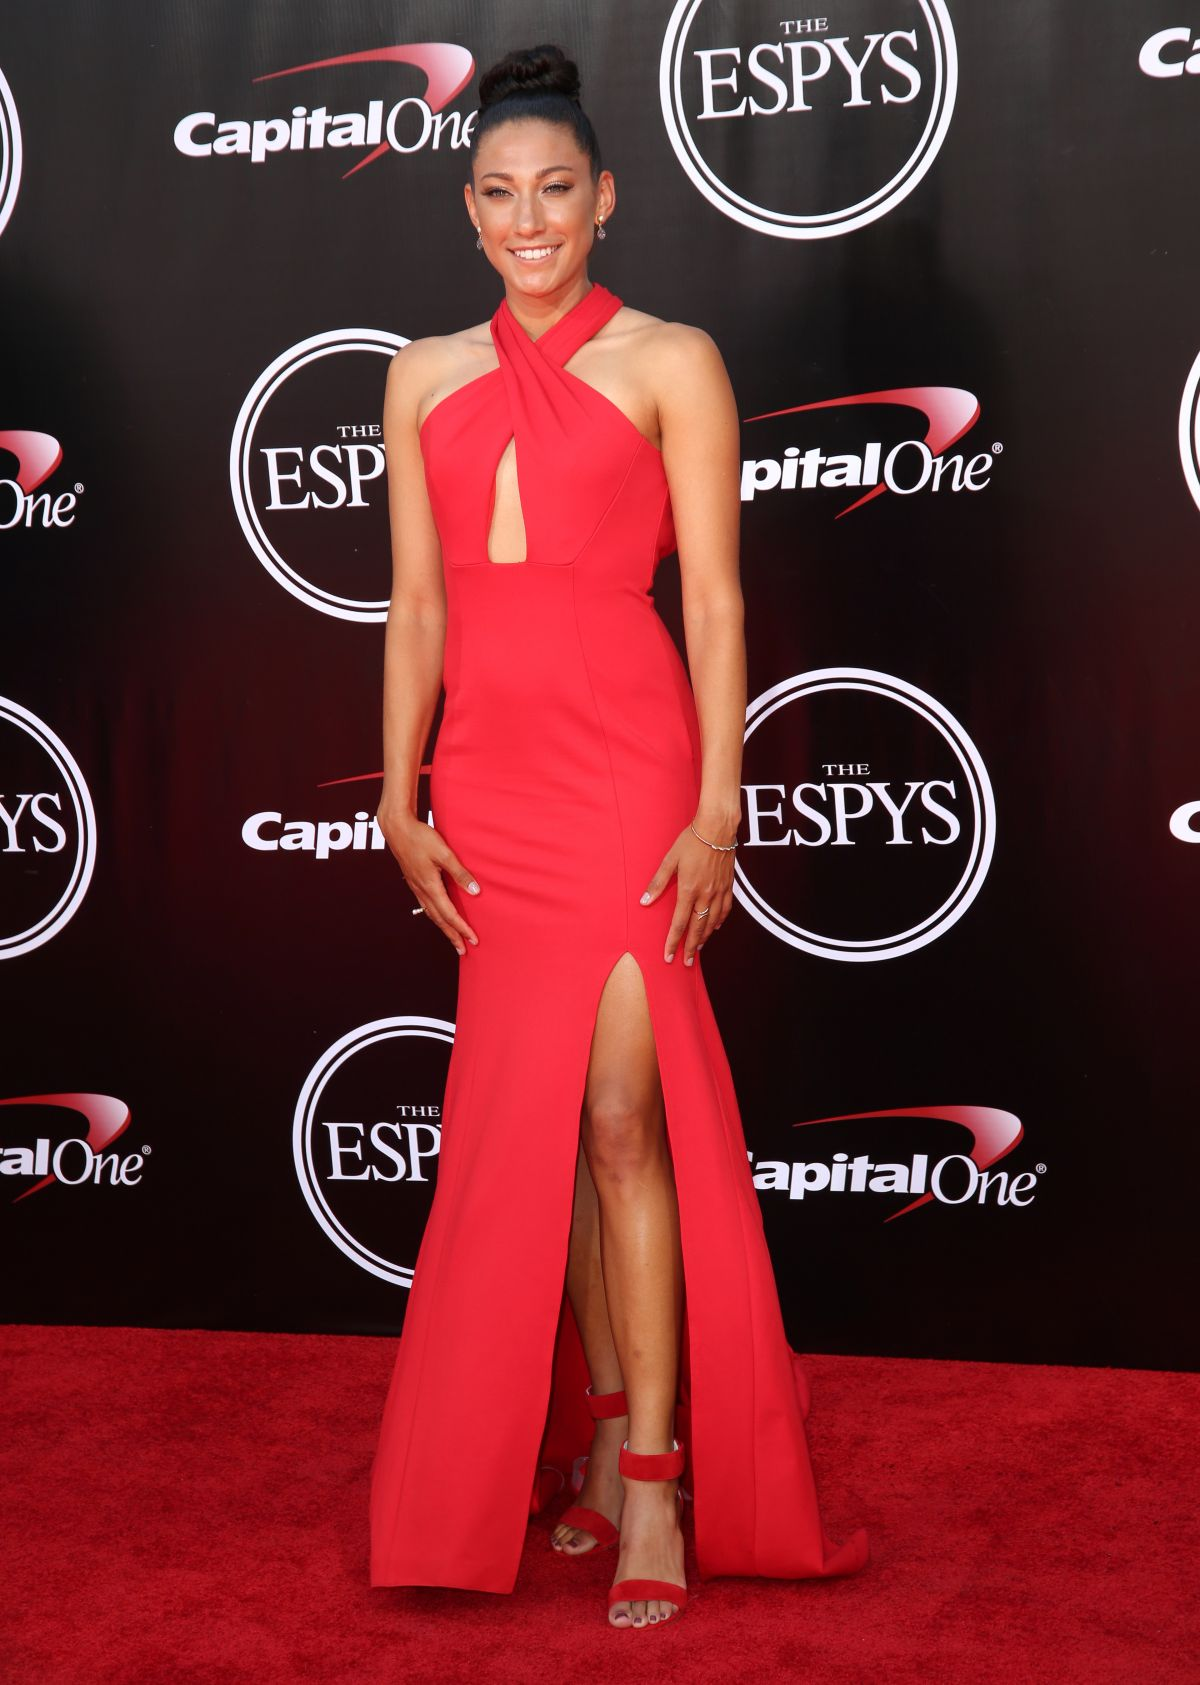 CHRISTEN PRESS at 2016 espys in Los Angeles 07/13/2016